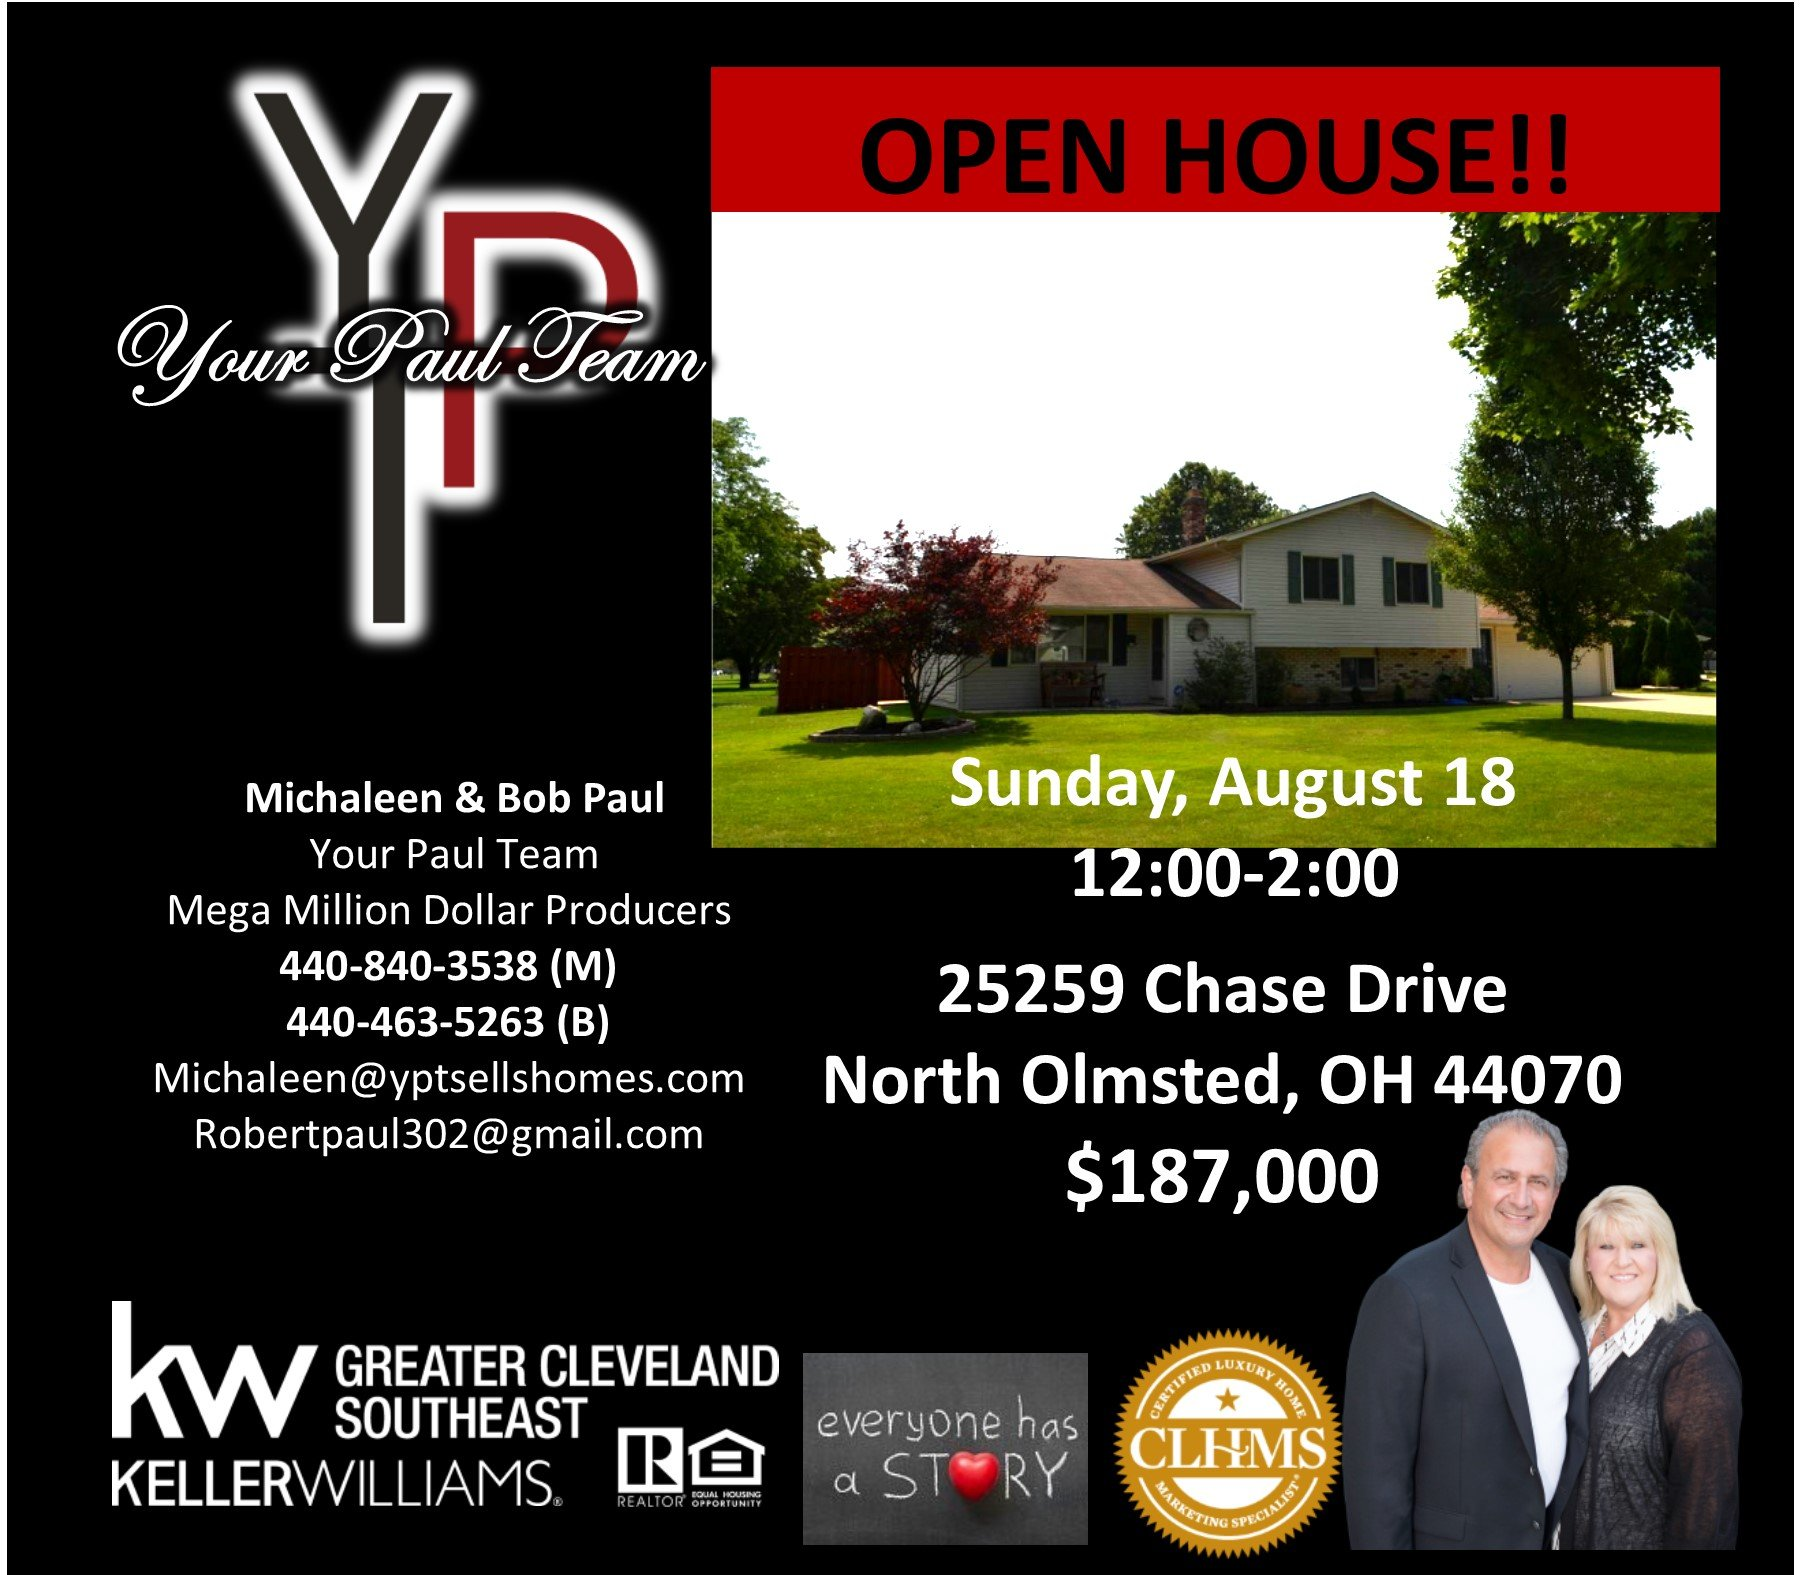 Open House this Sunday in North Olmsted!!